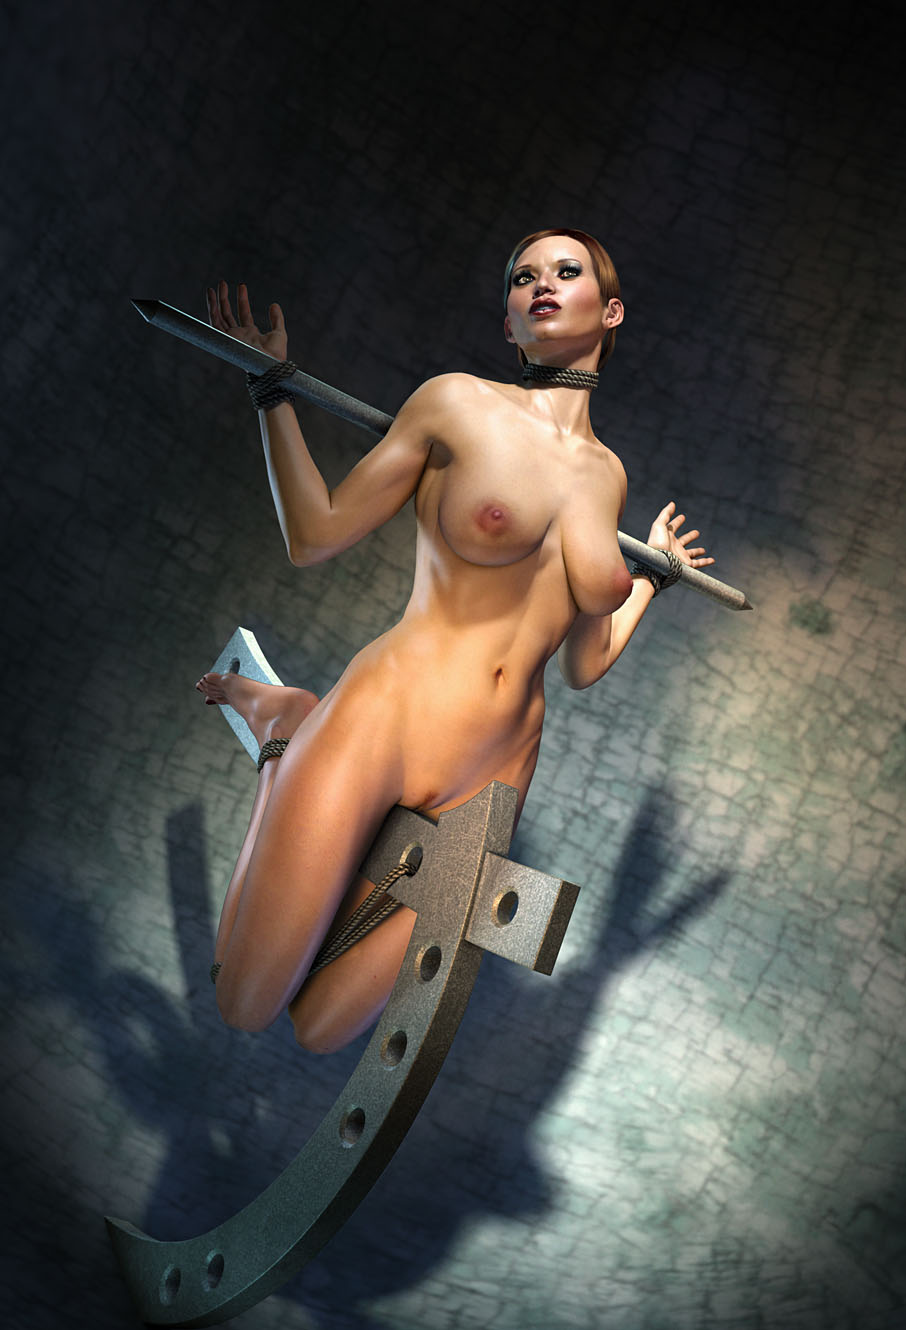 Cgi bondage artworks cartoon photo